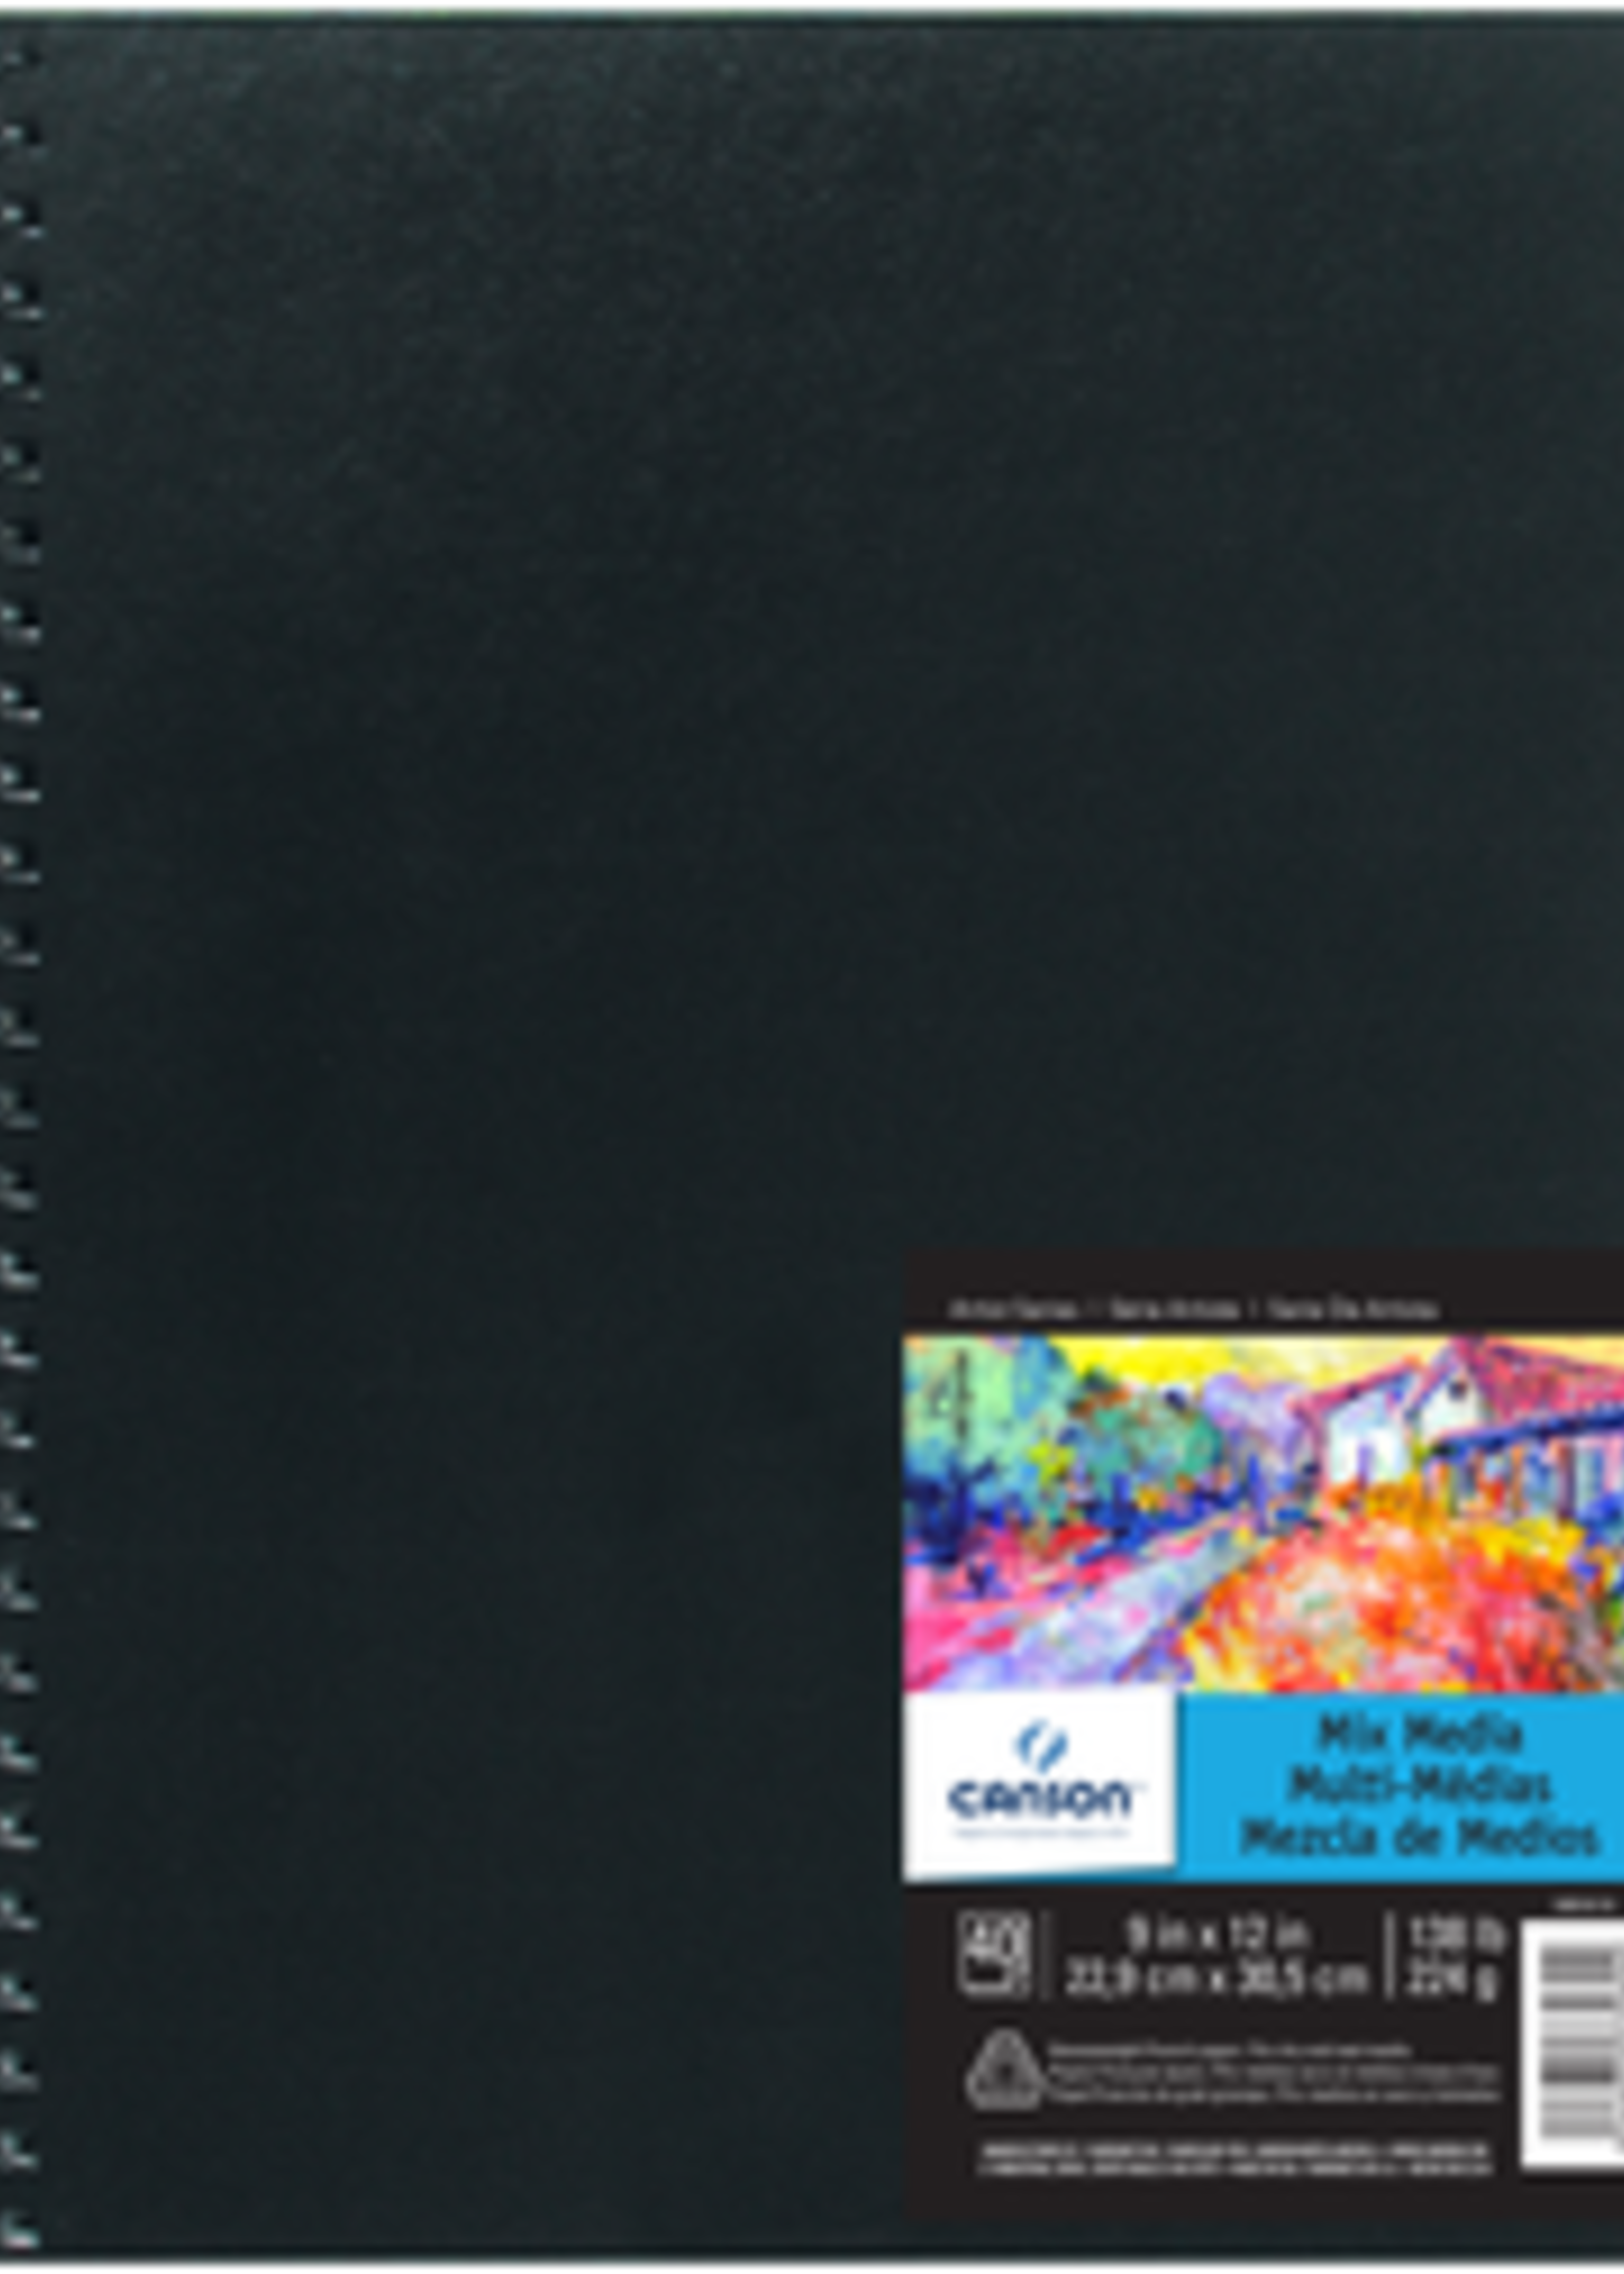 CANSON / PACON PAPERS MIXED MEDIA ARTBOOK 138LB 40 SHEET 9 X 12